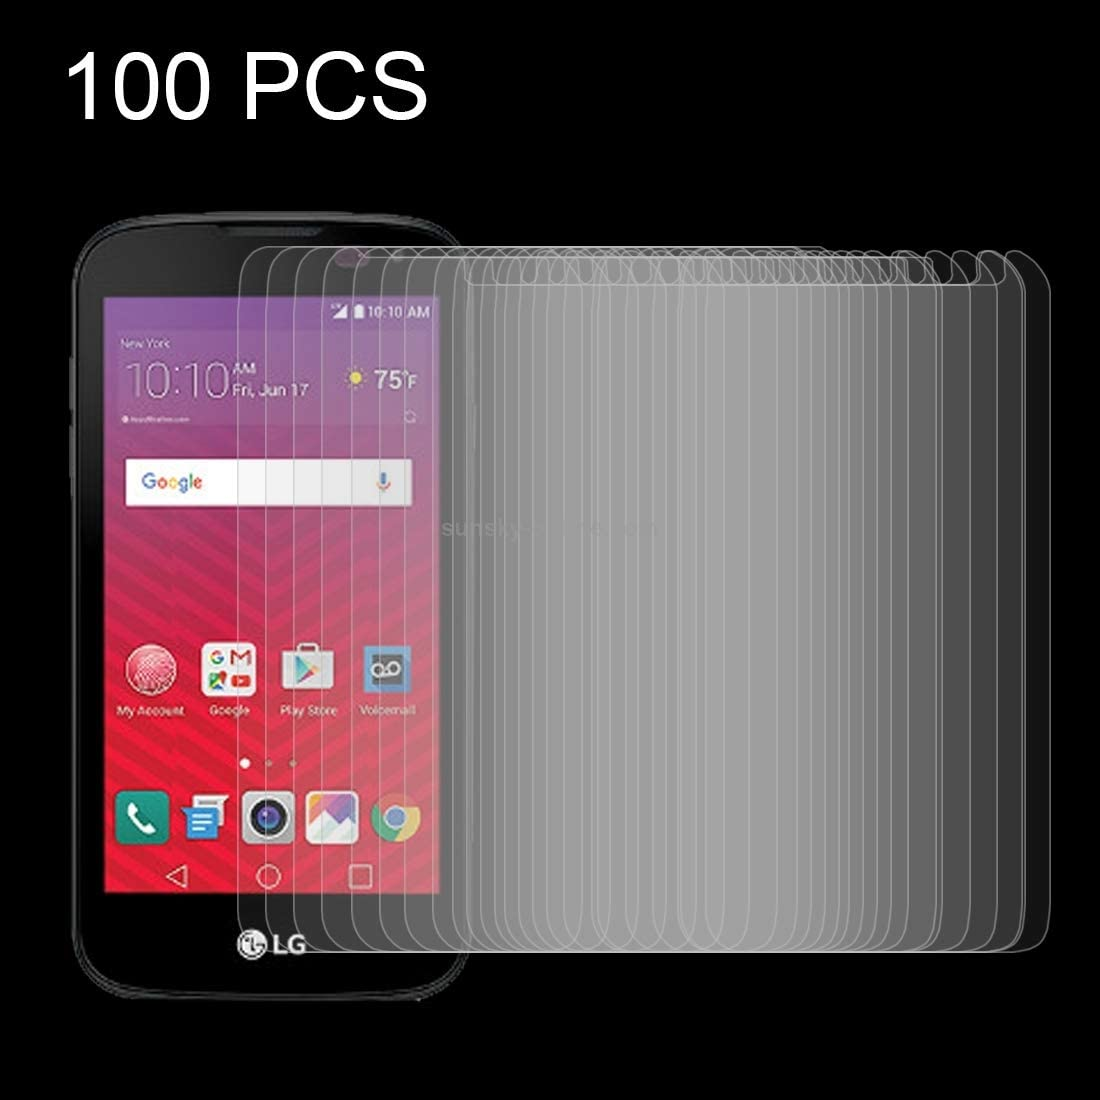 0.26mm 9H Surface Hardness Explosion-Proof Tempered Glass Screen Film Tempered Glass Film 2017 XHC Screen Protector Film 100 PCS for LG K3